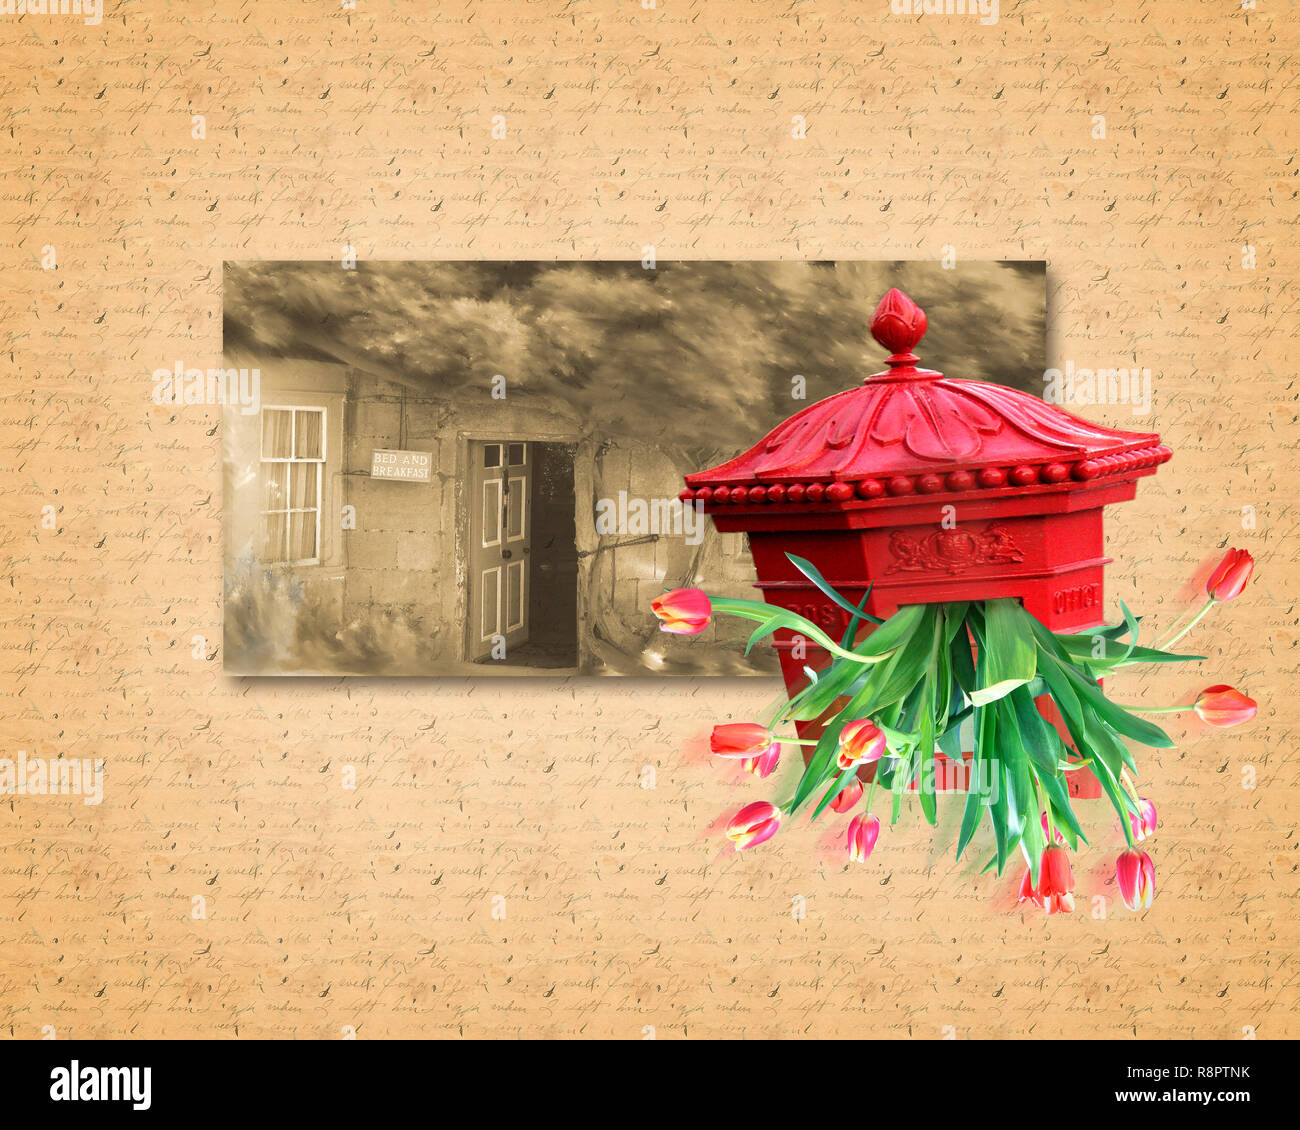 CONCEPT PHOTOGRAPHY: Greeting Card Design - Stock Image